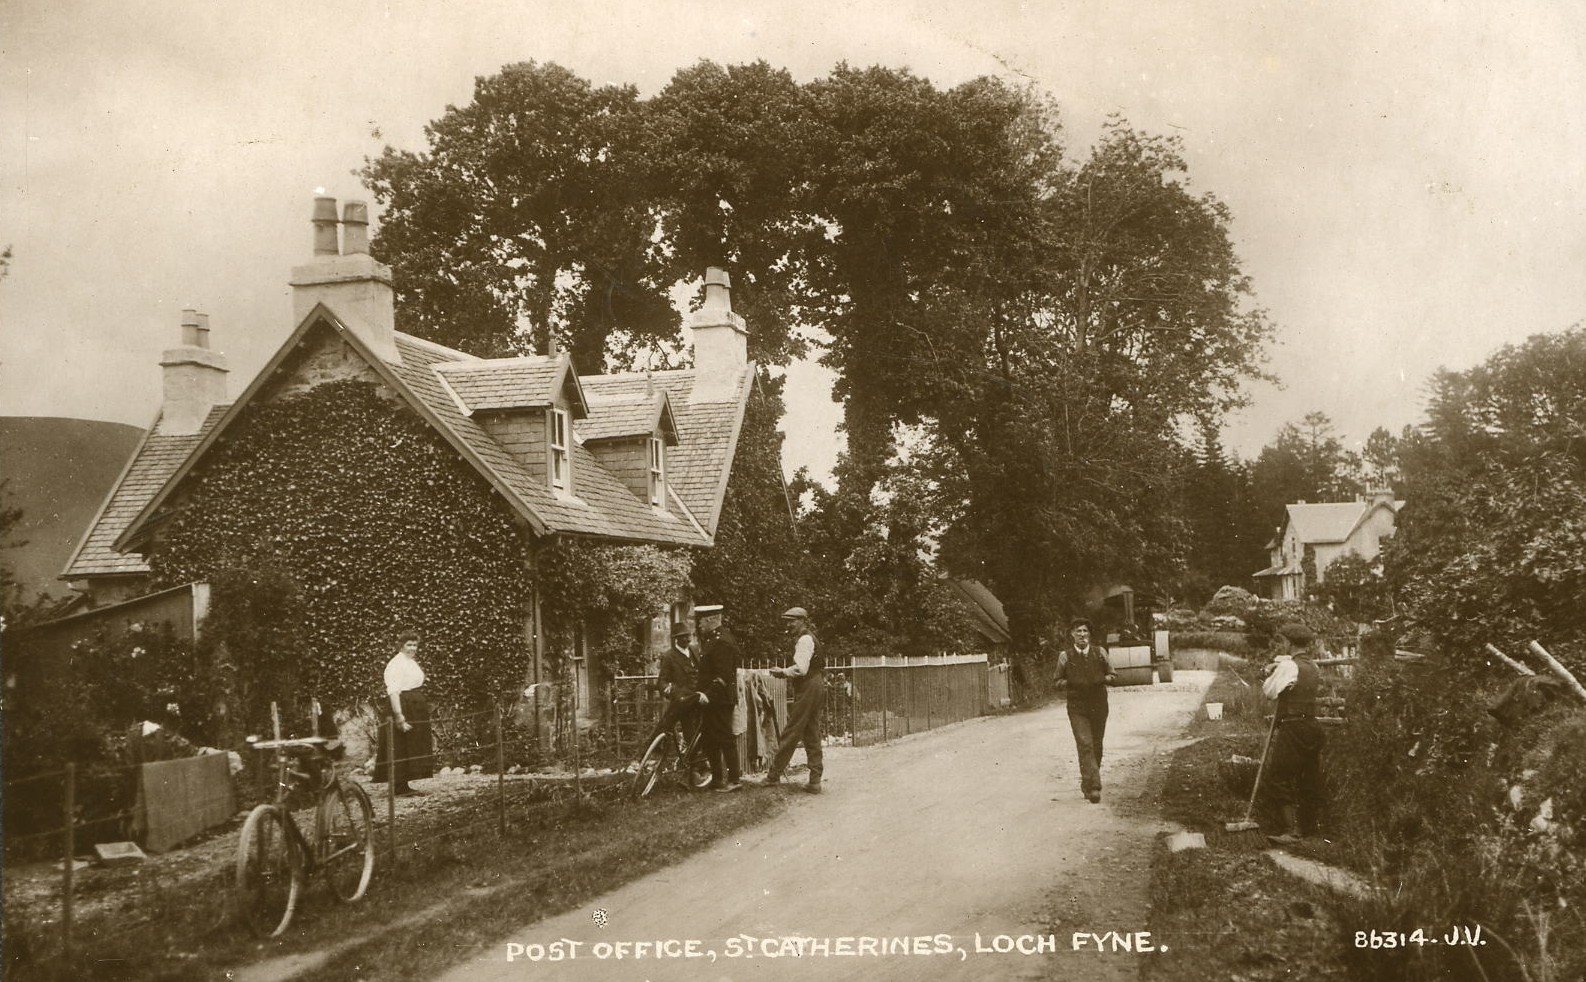 Post Office, St Catherines